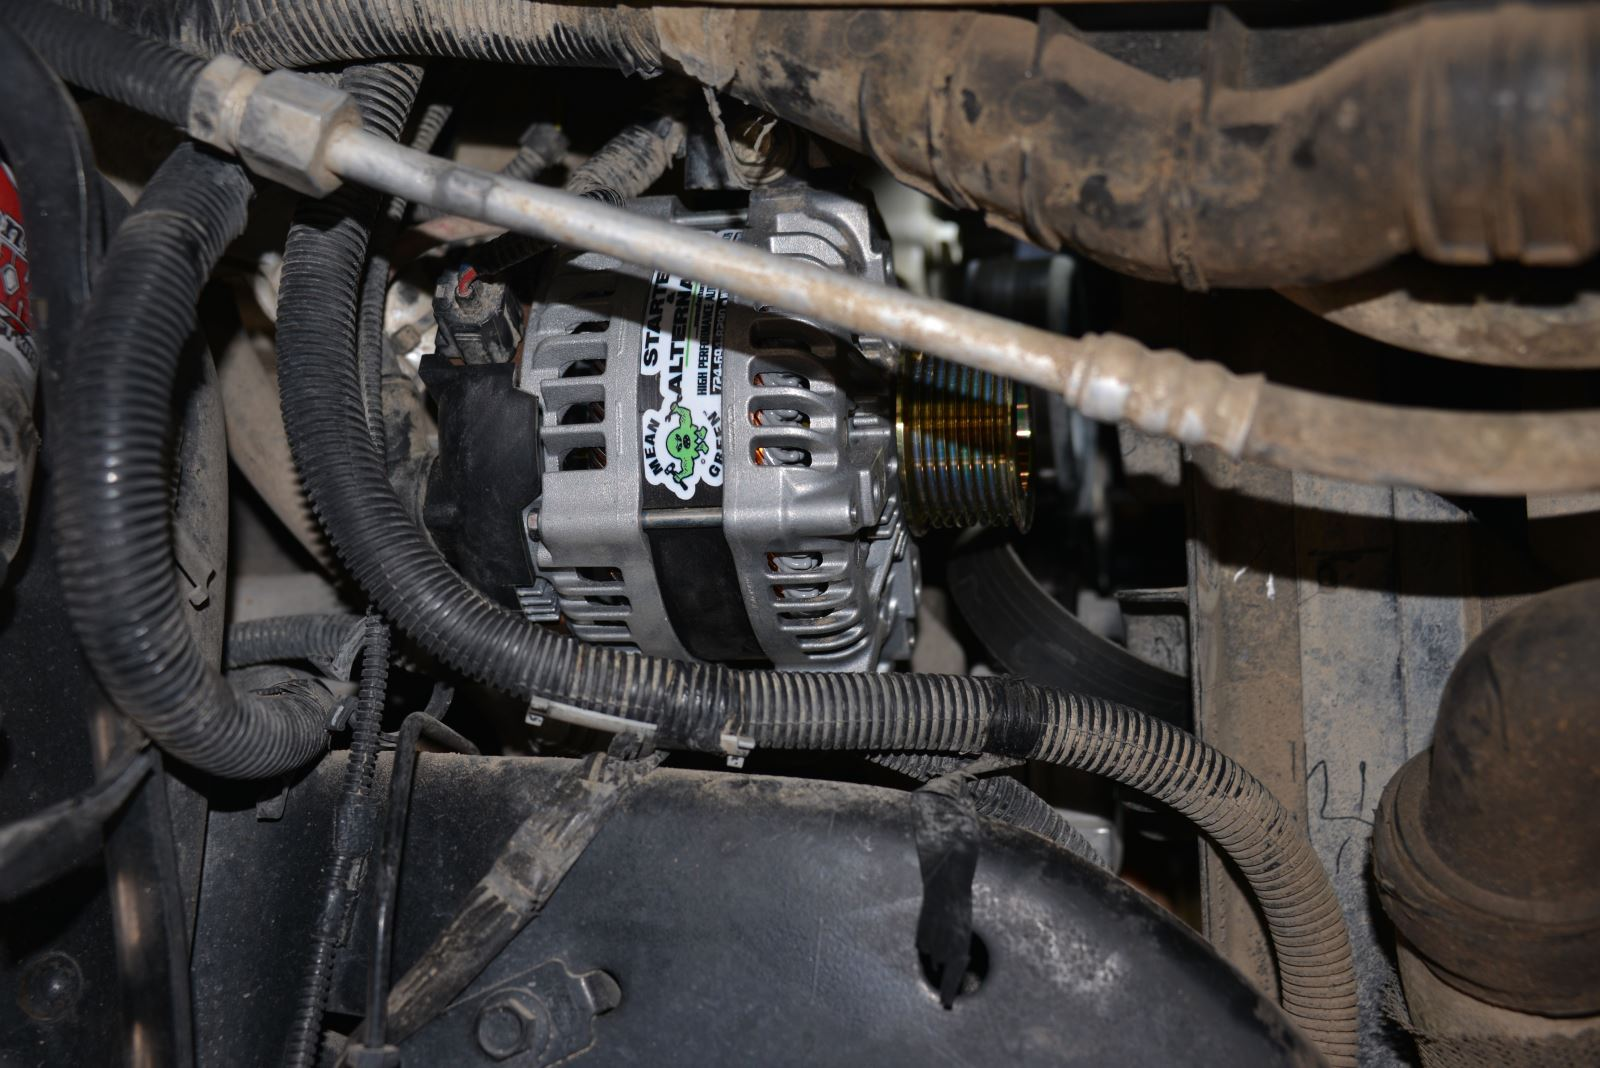 What Does Garage Mean: DT Garage: Installing A Mean Green Alternator